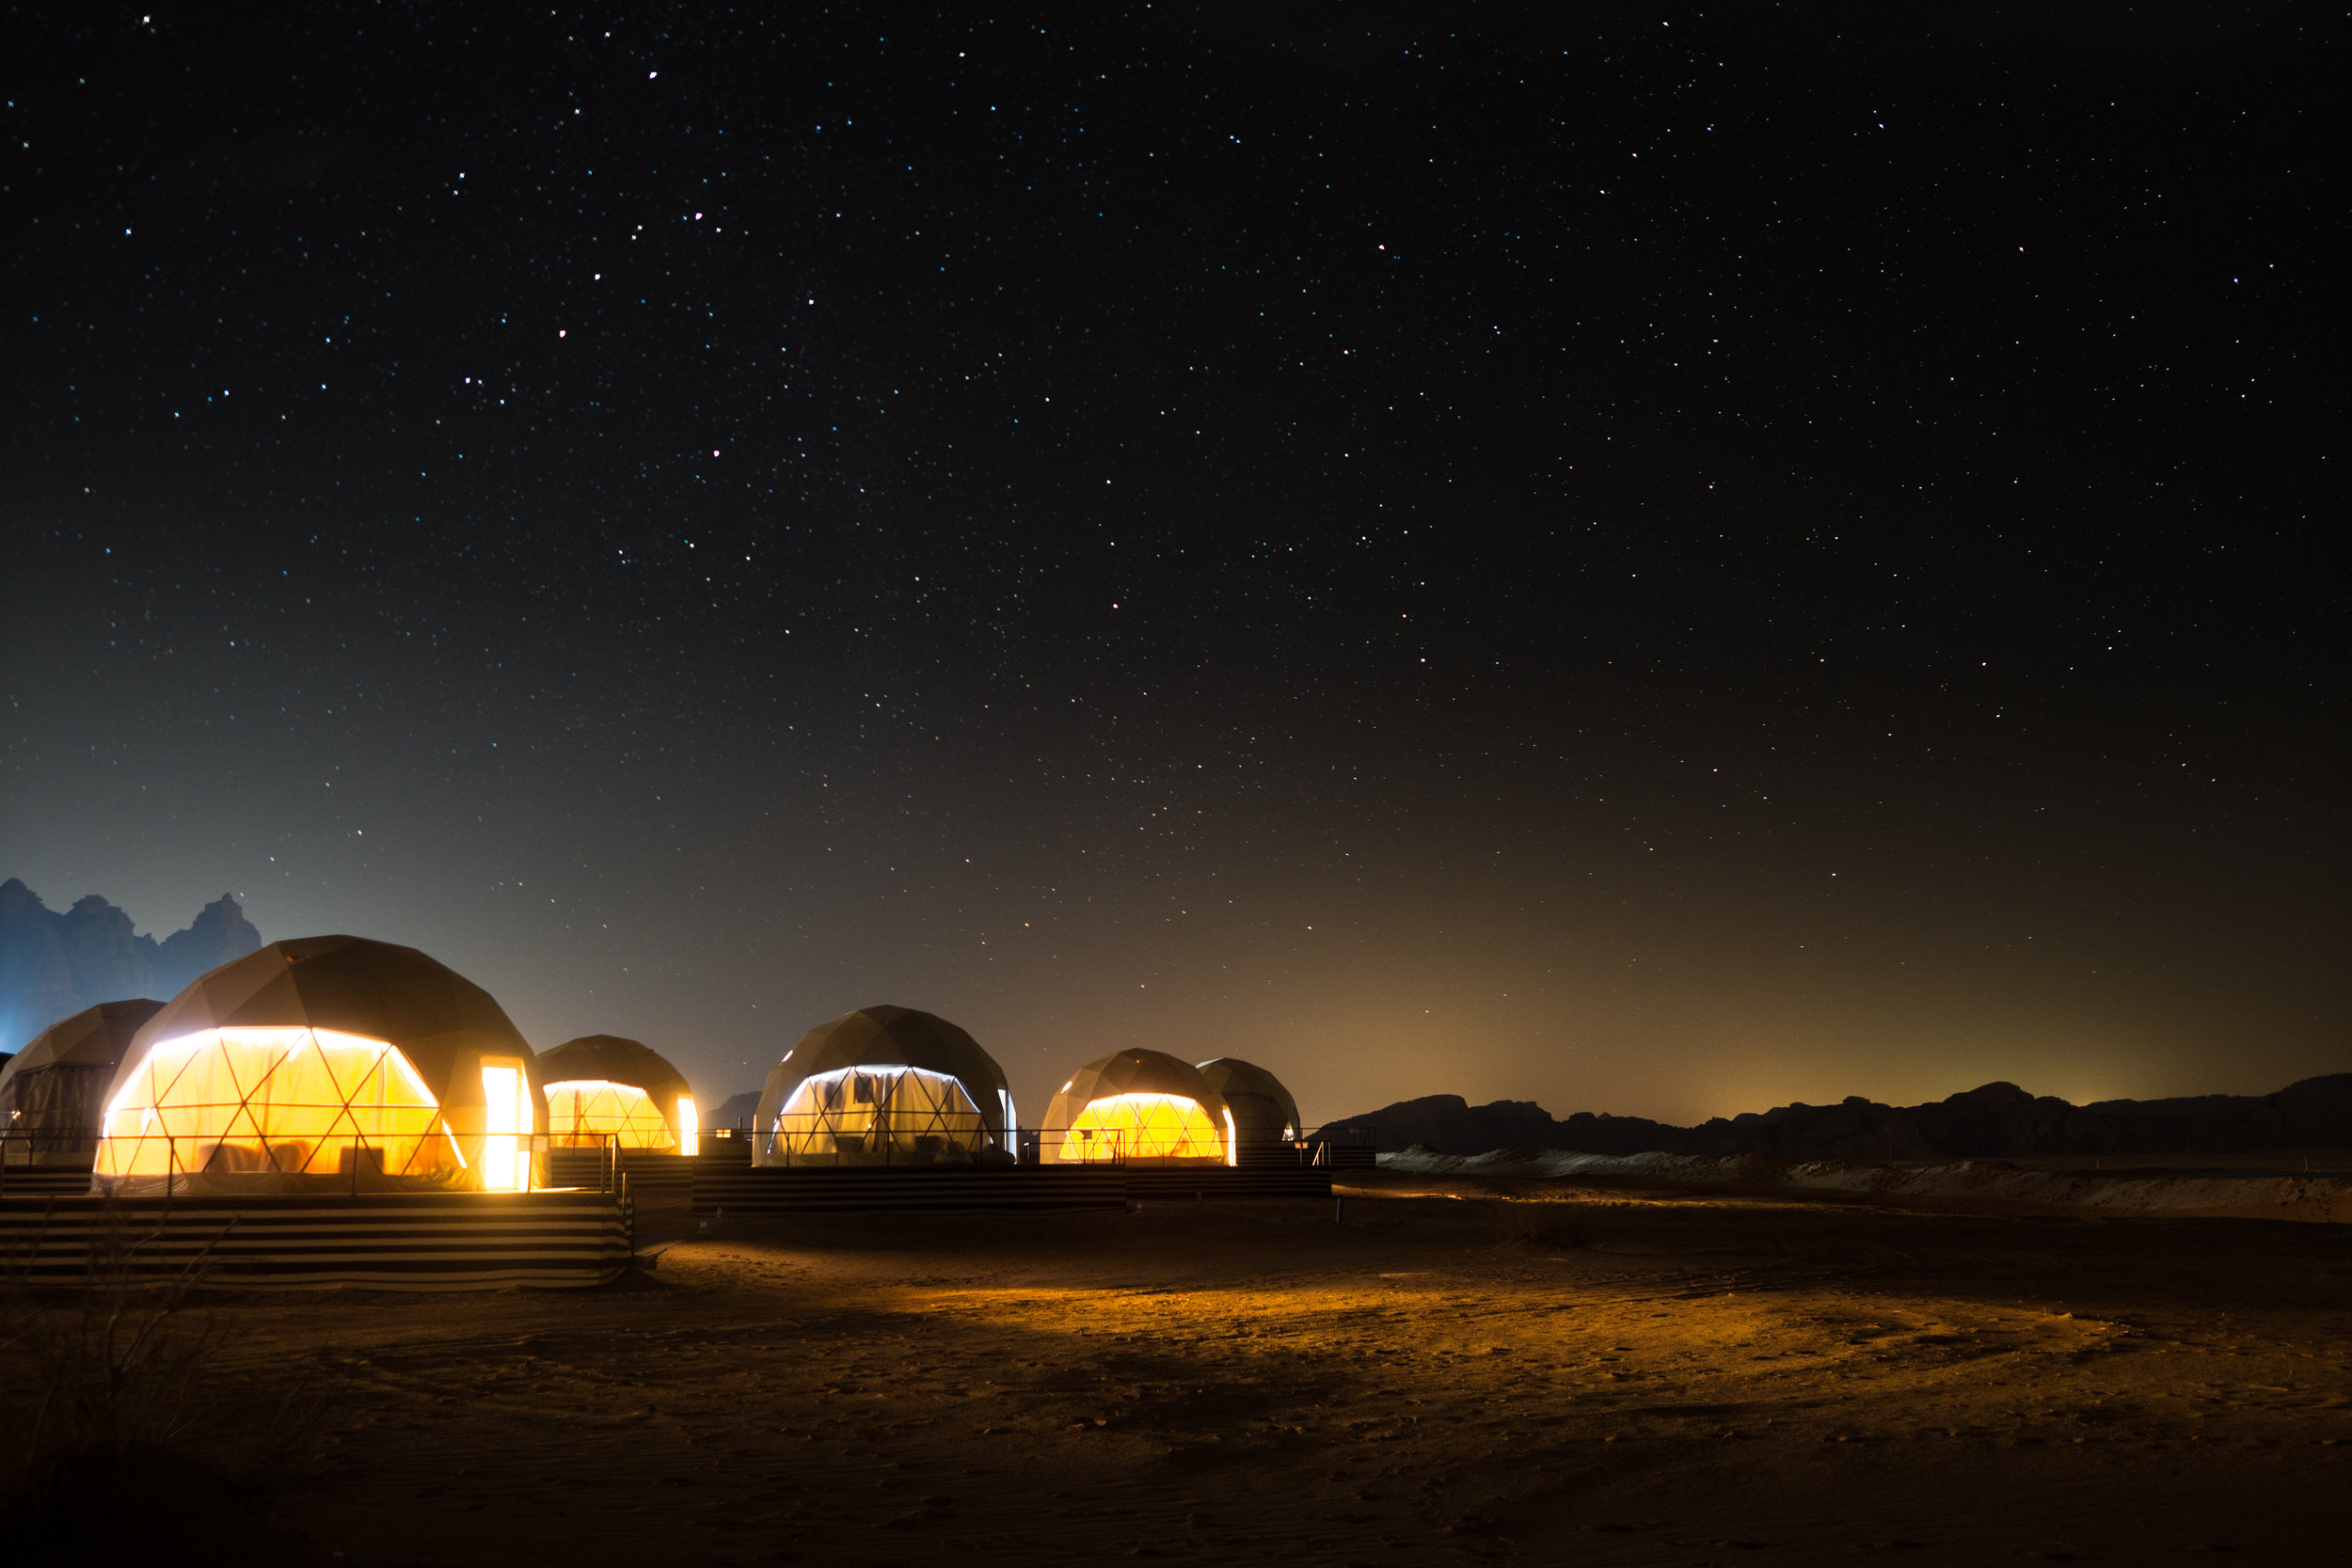 Sun City Camp, Wadi Rum, Jordan, Feb. 2018